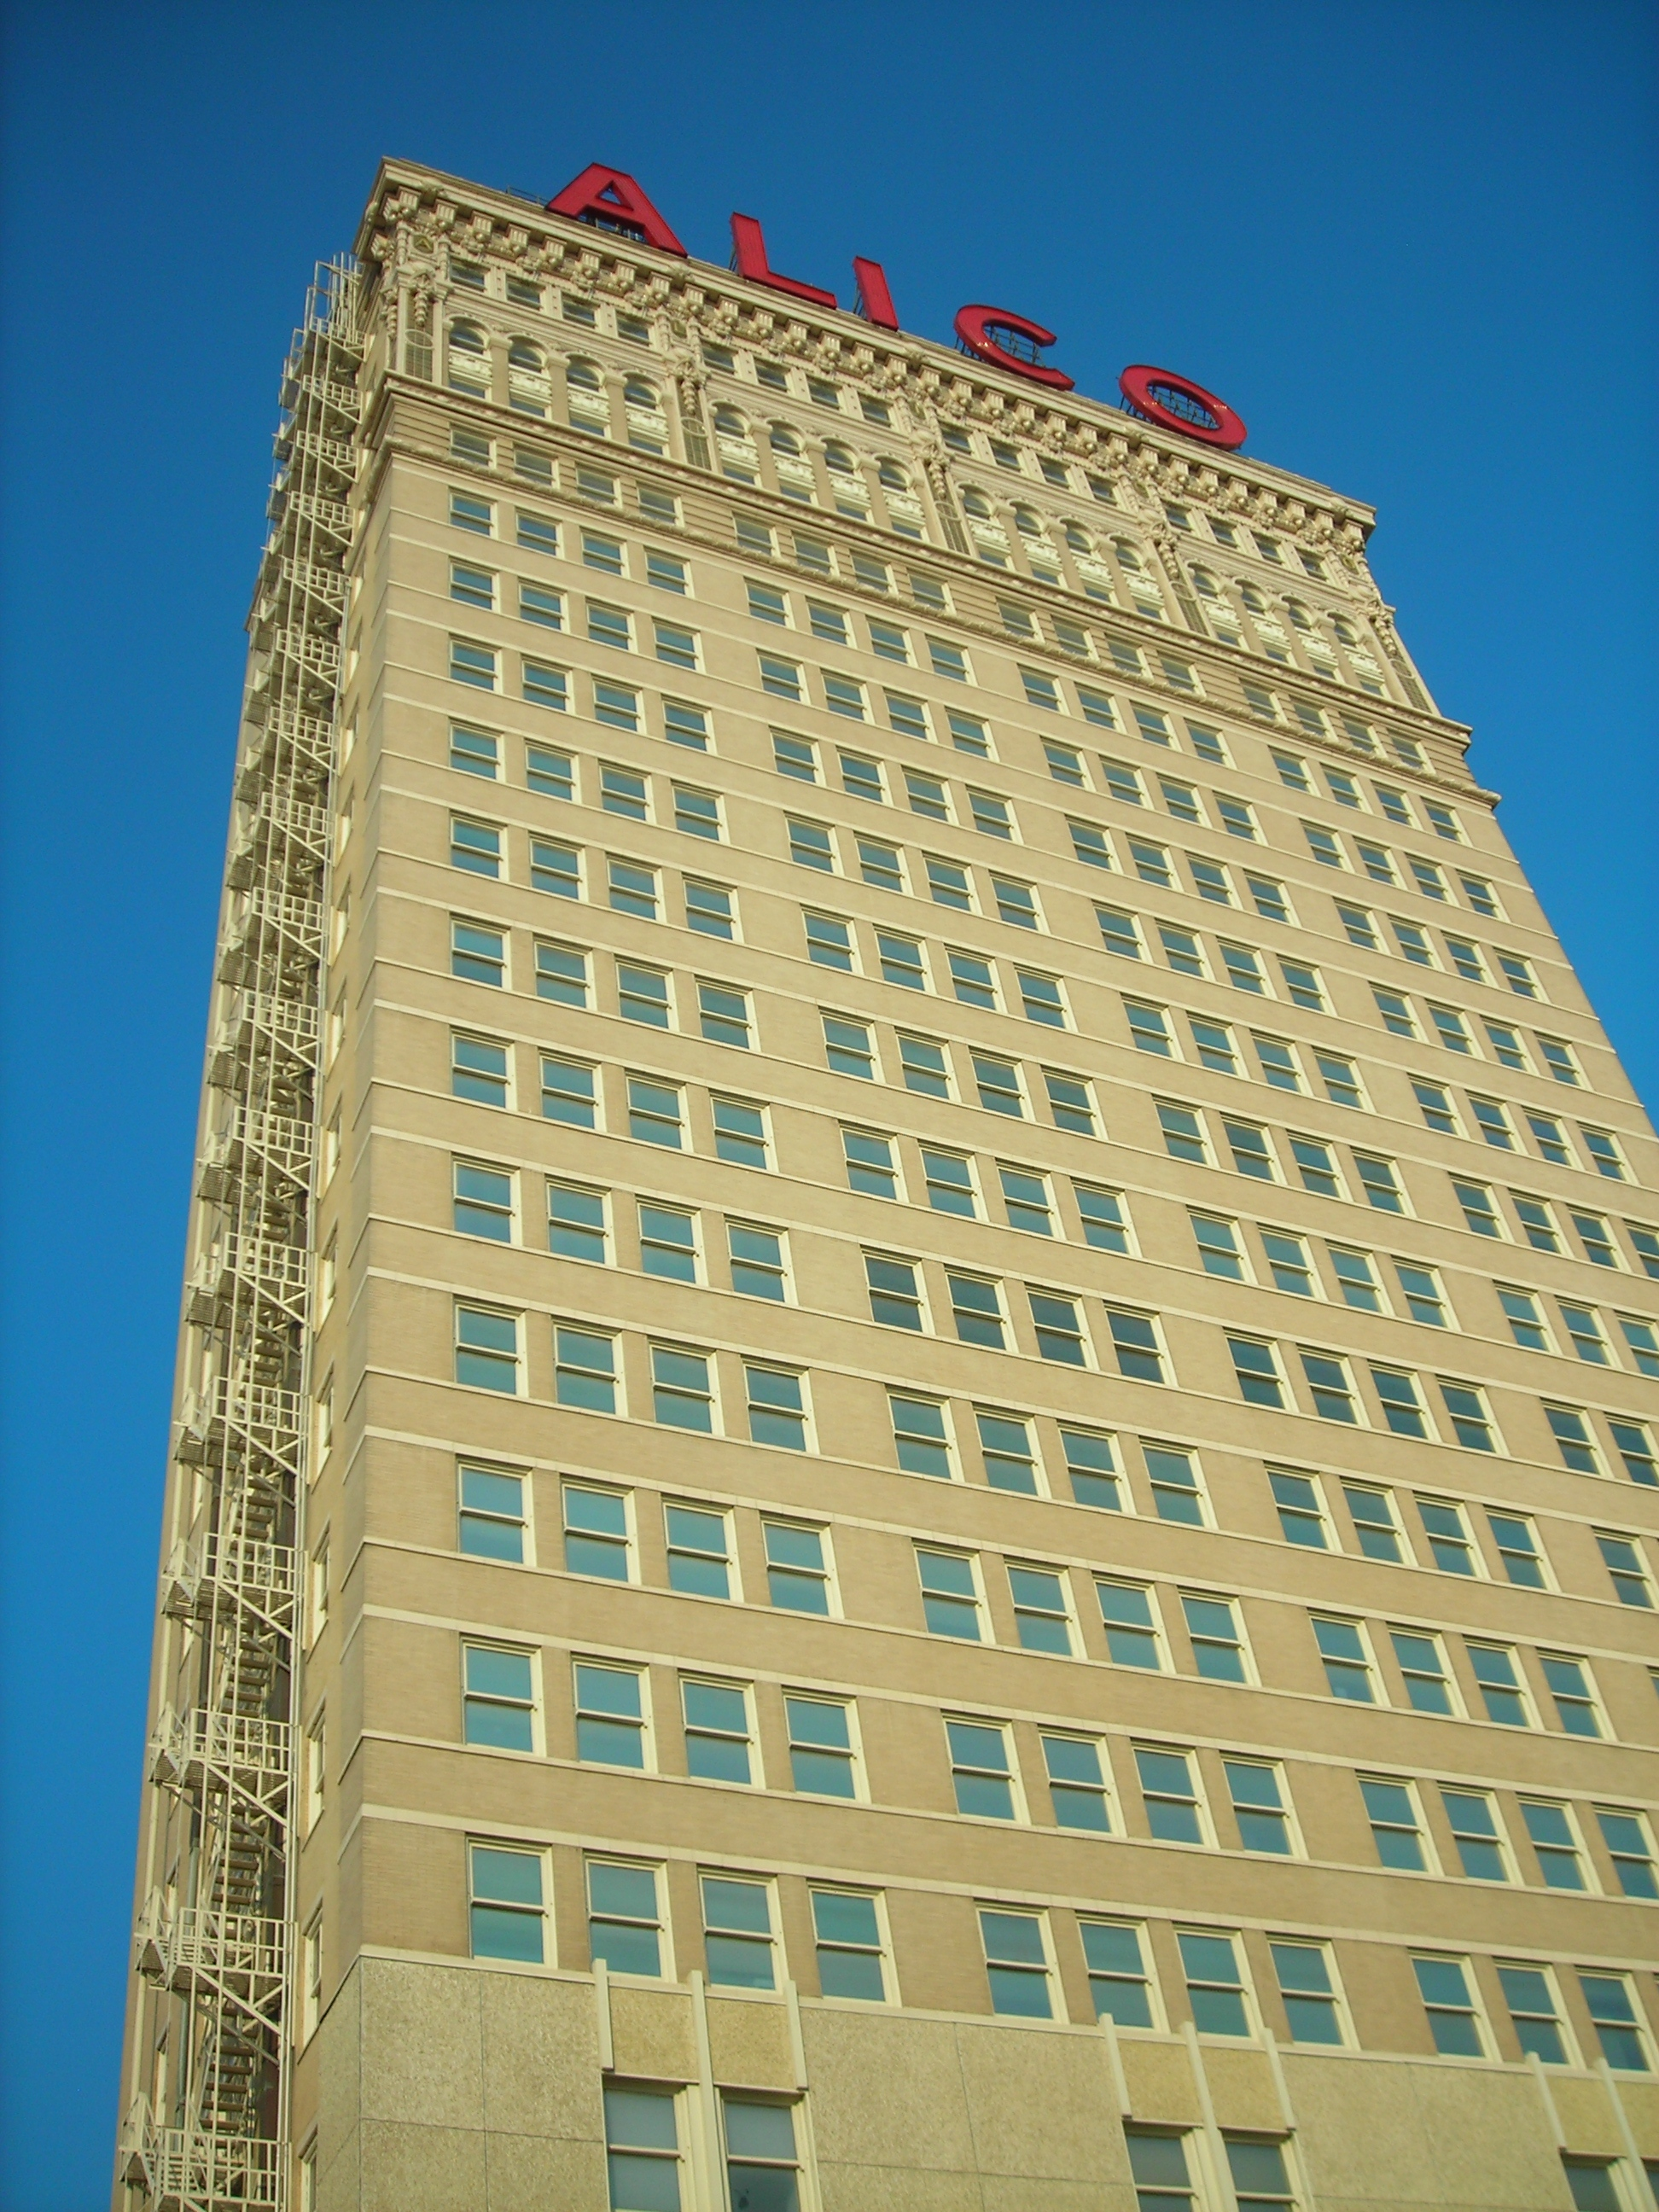 the landmark alico building, downtown waco ... that thing is TALL!